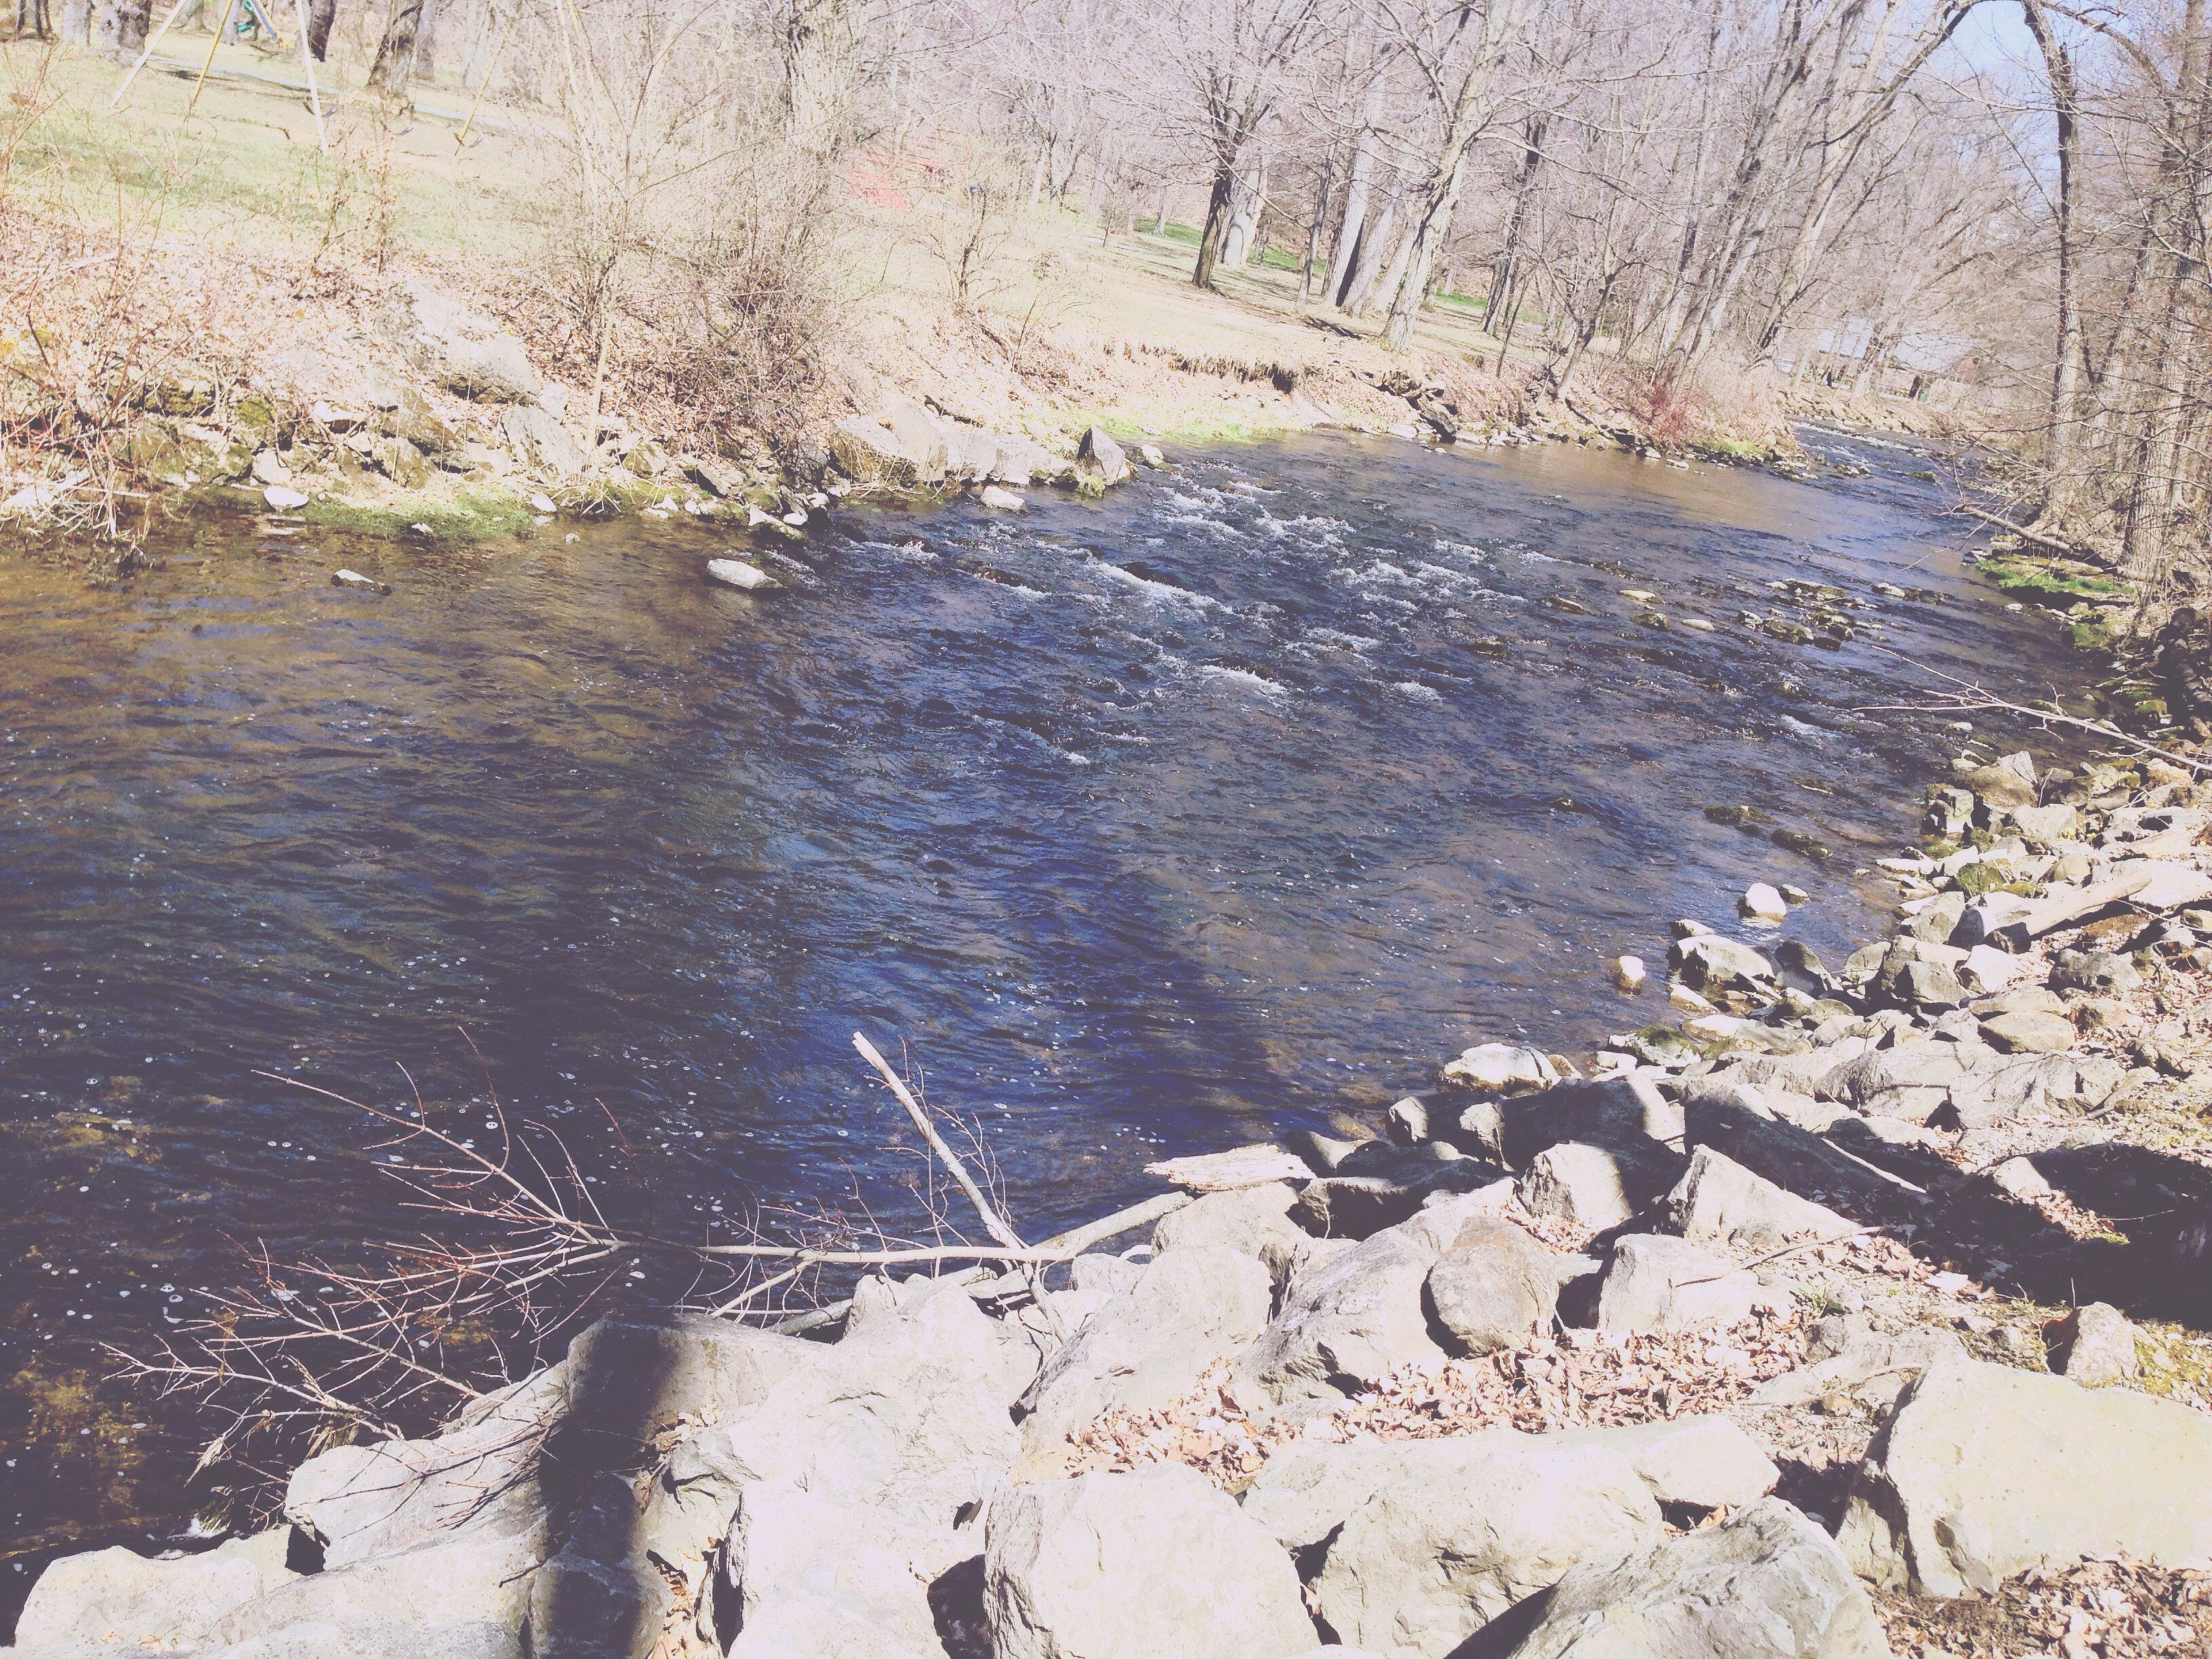 water, rock - object, tranquility, nature, tranquil scene, high angle view, reflection, beauty in nature, stone - object, scenics, river, stream, day, outdoors, lake, stone, sunlight, rippled, shore, no people